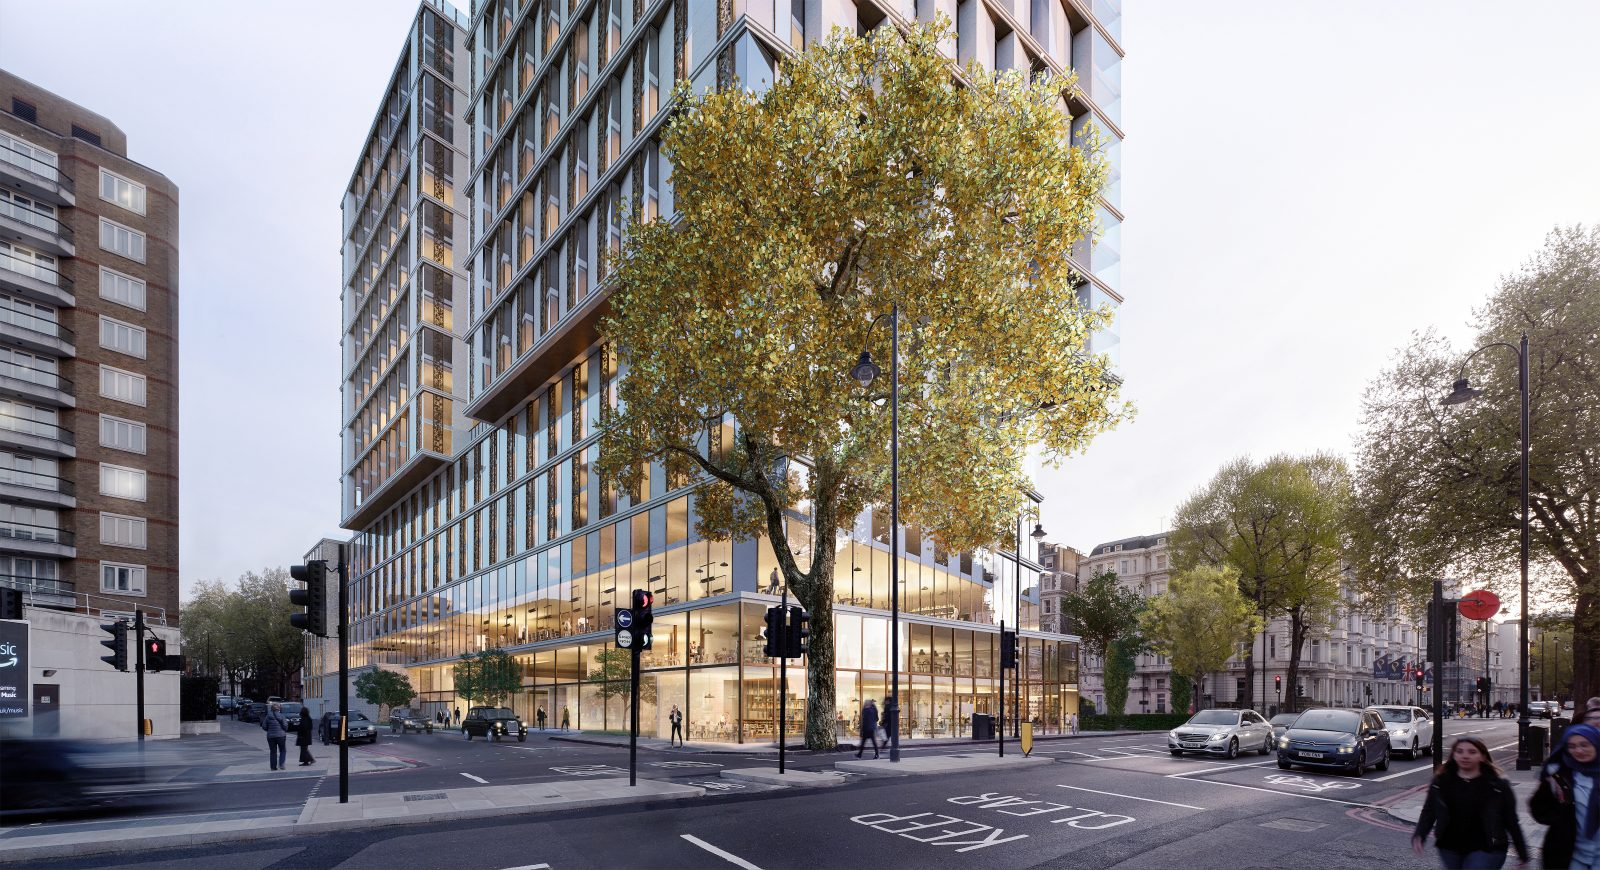 Investors back London's recovery with £1bn hotel redevelopment